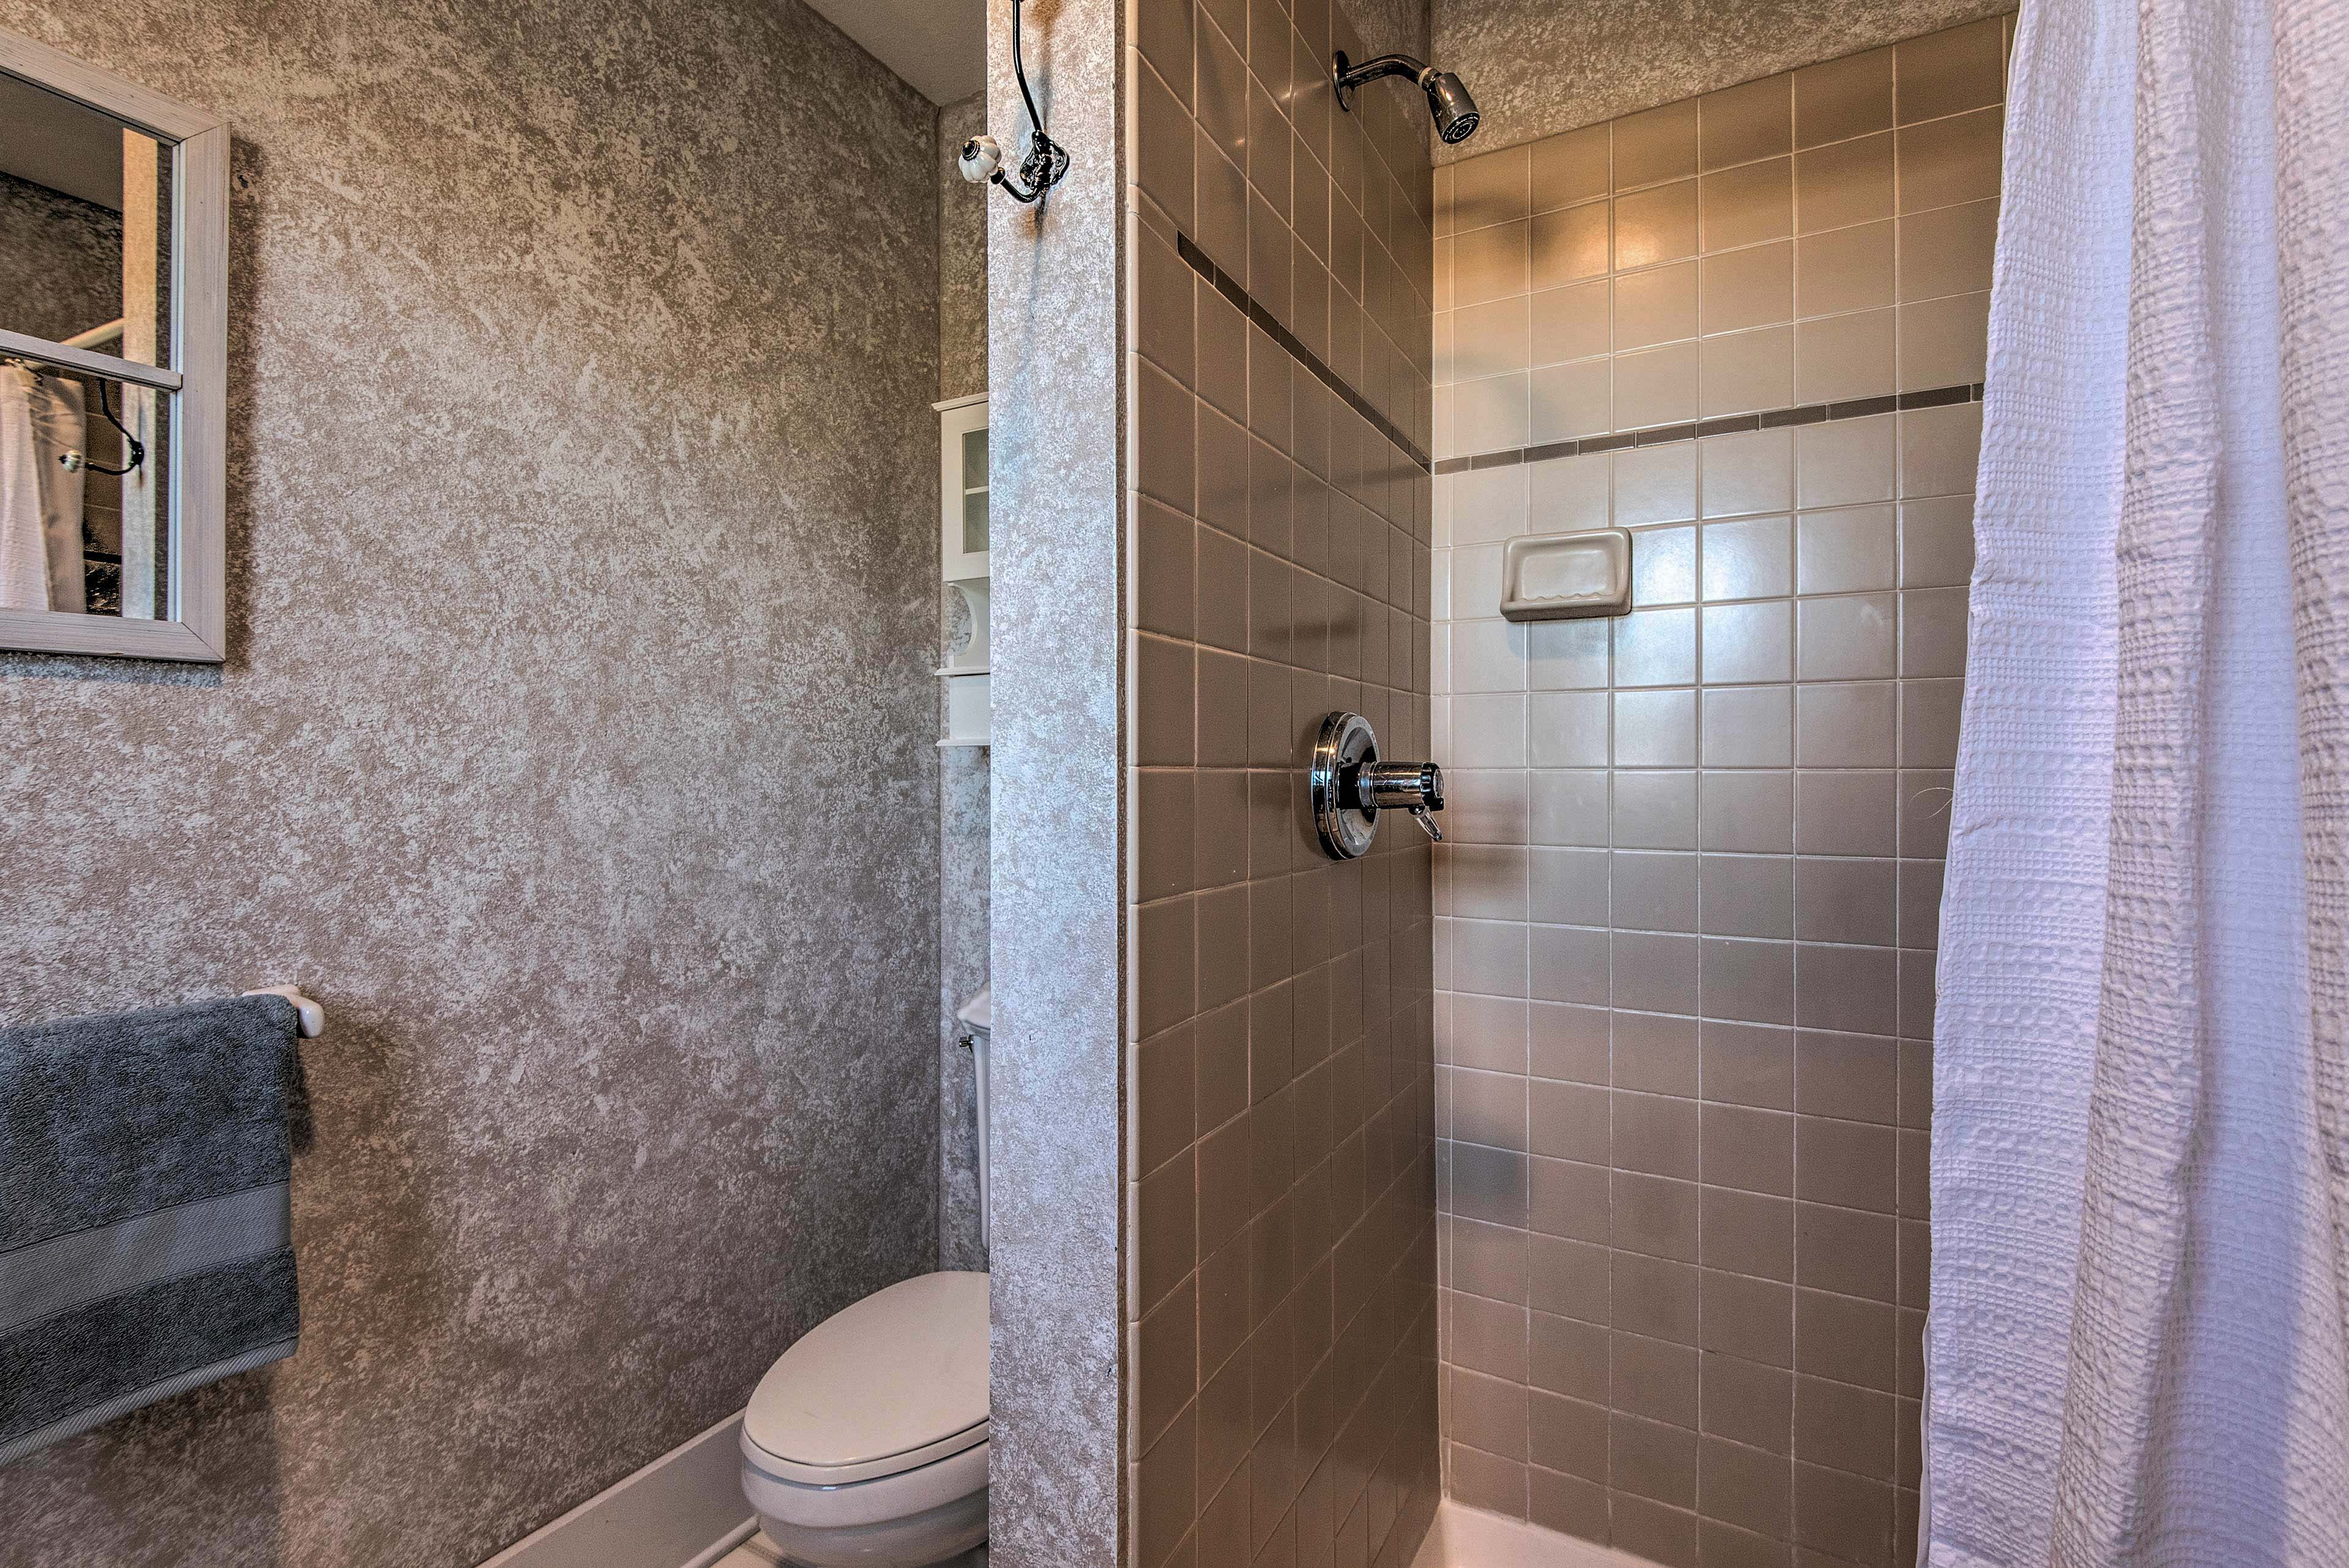 Take a relaxing rinse in the walk-in shower!